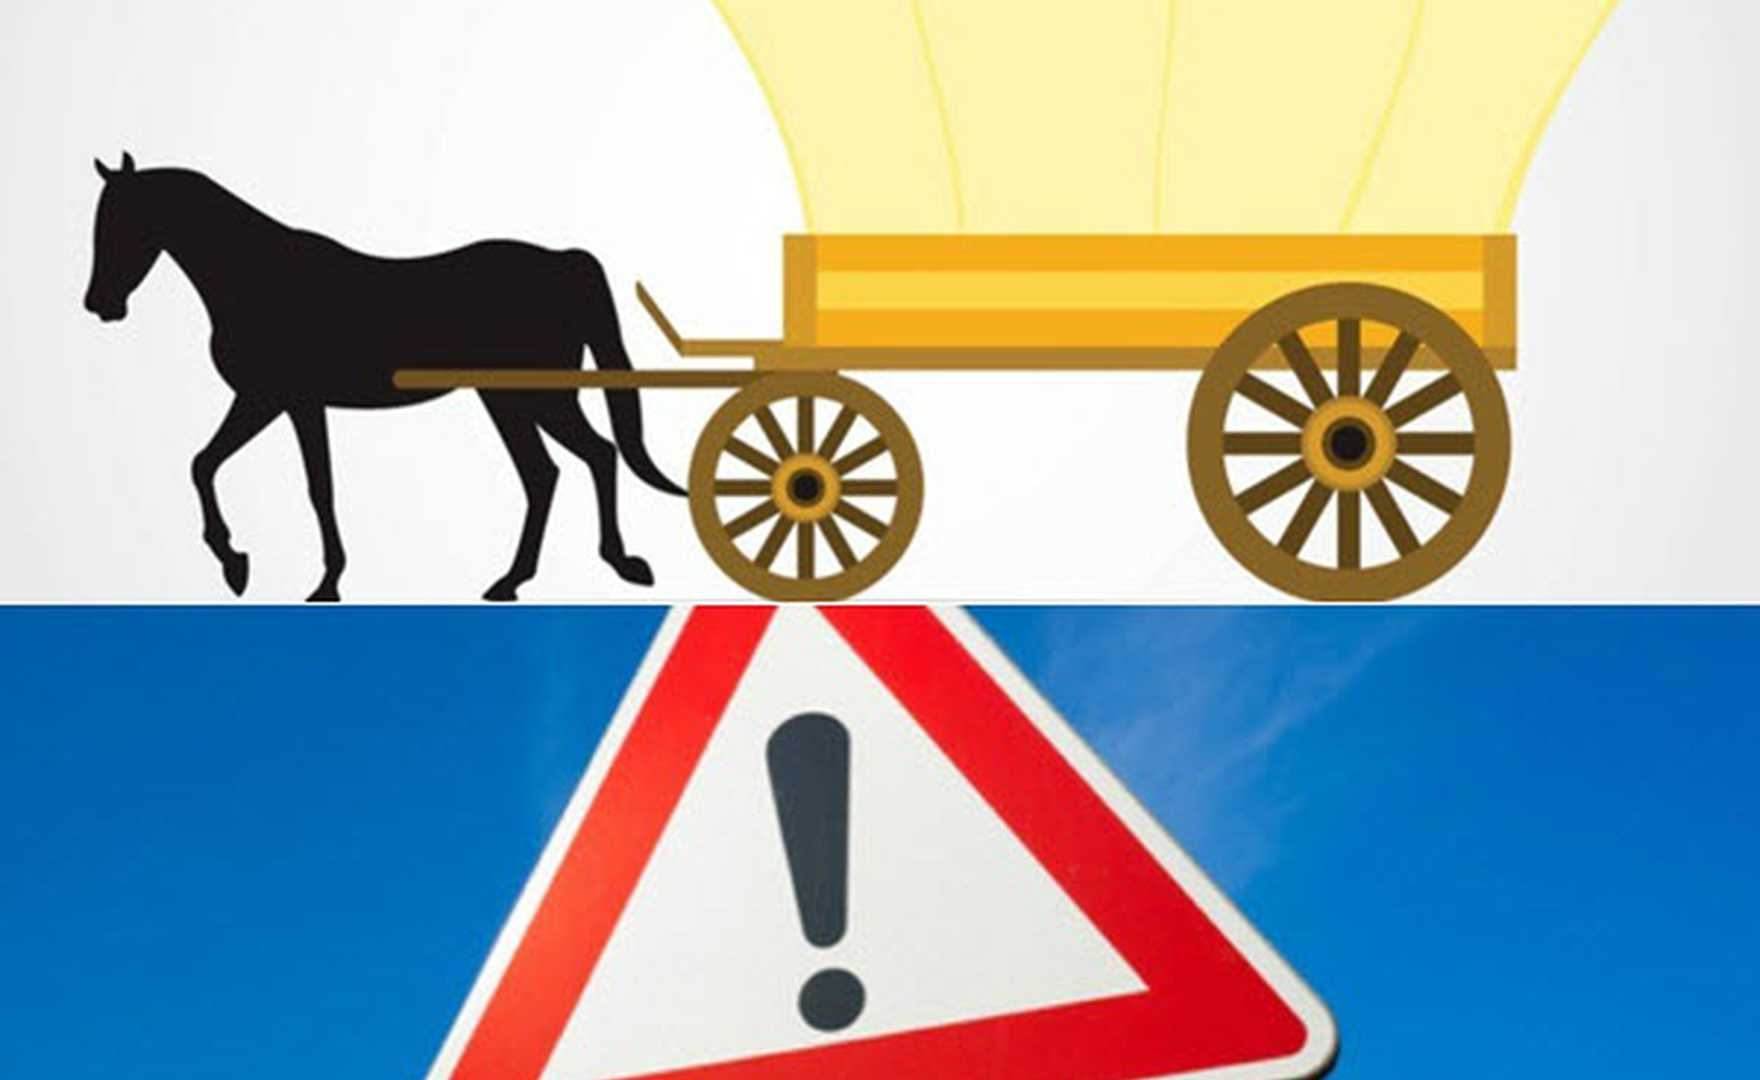 Mental Health and Coaching: Horse and Carriage? Or No-Go Zone?